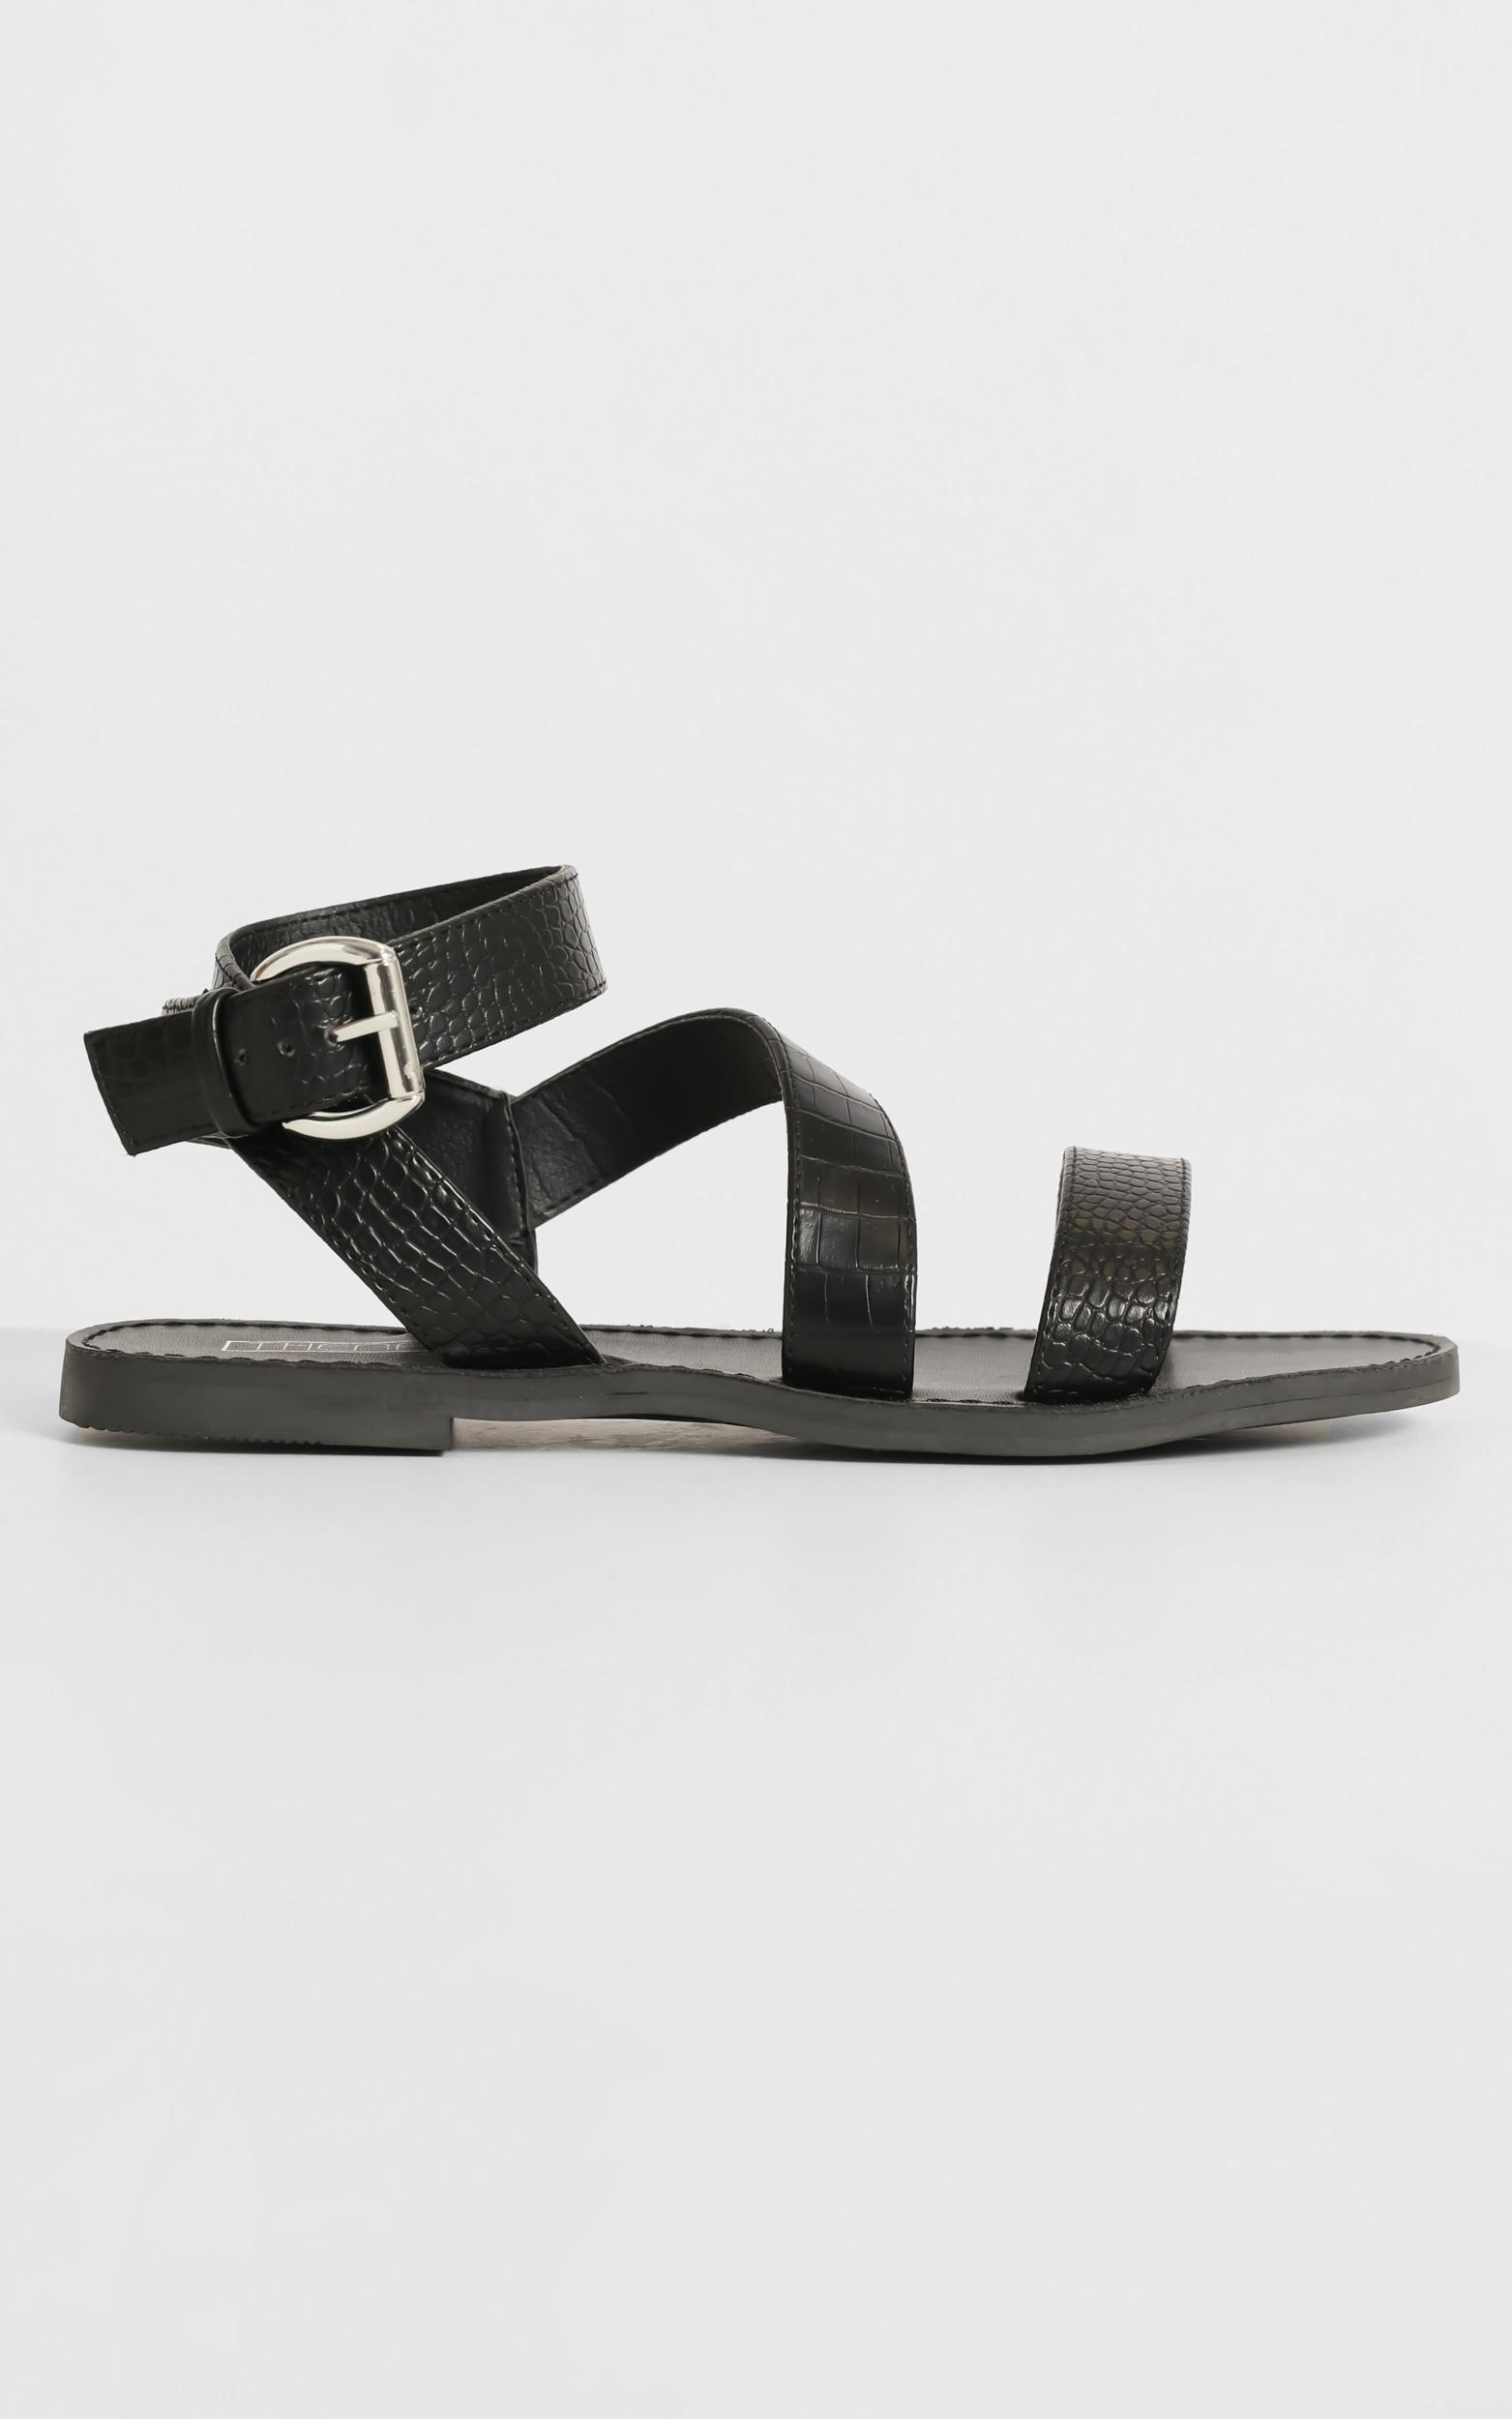 Therapy - Rimes Sandals in Black - 5, Black, hi-res image number null